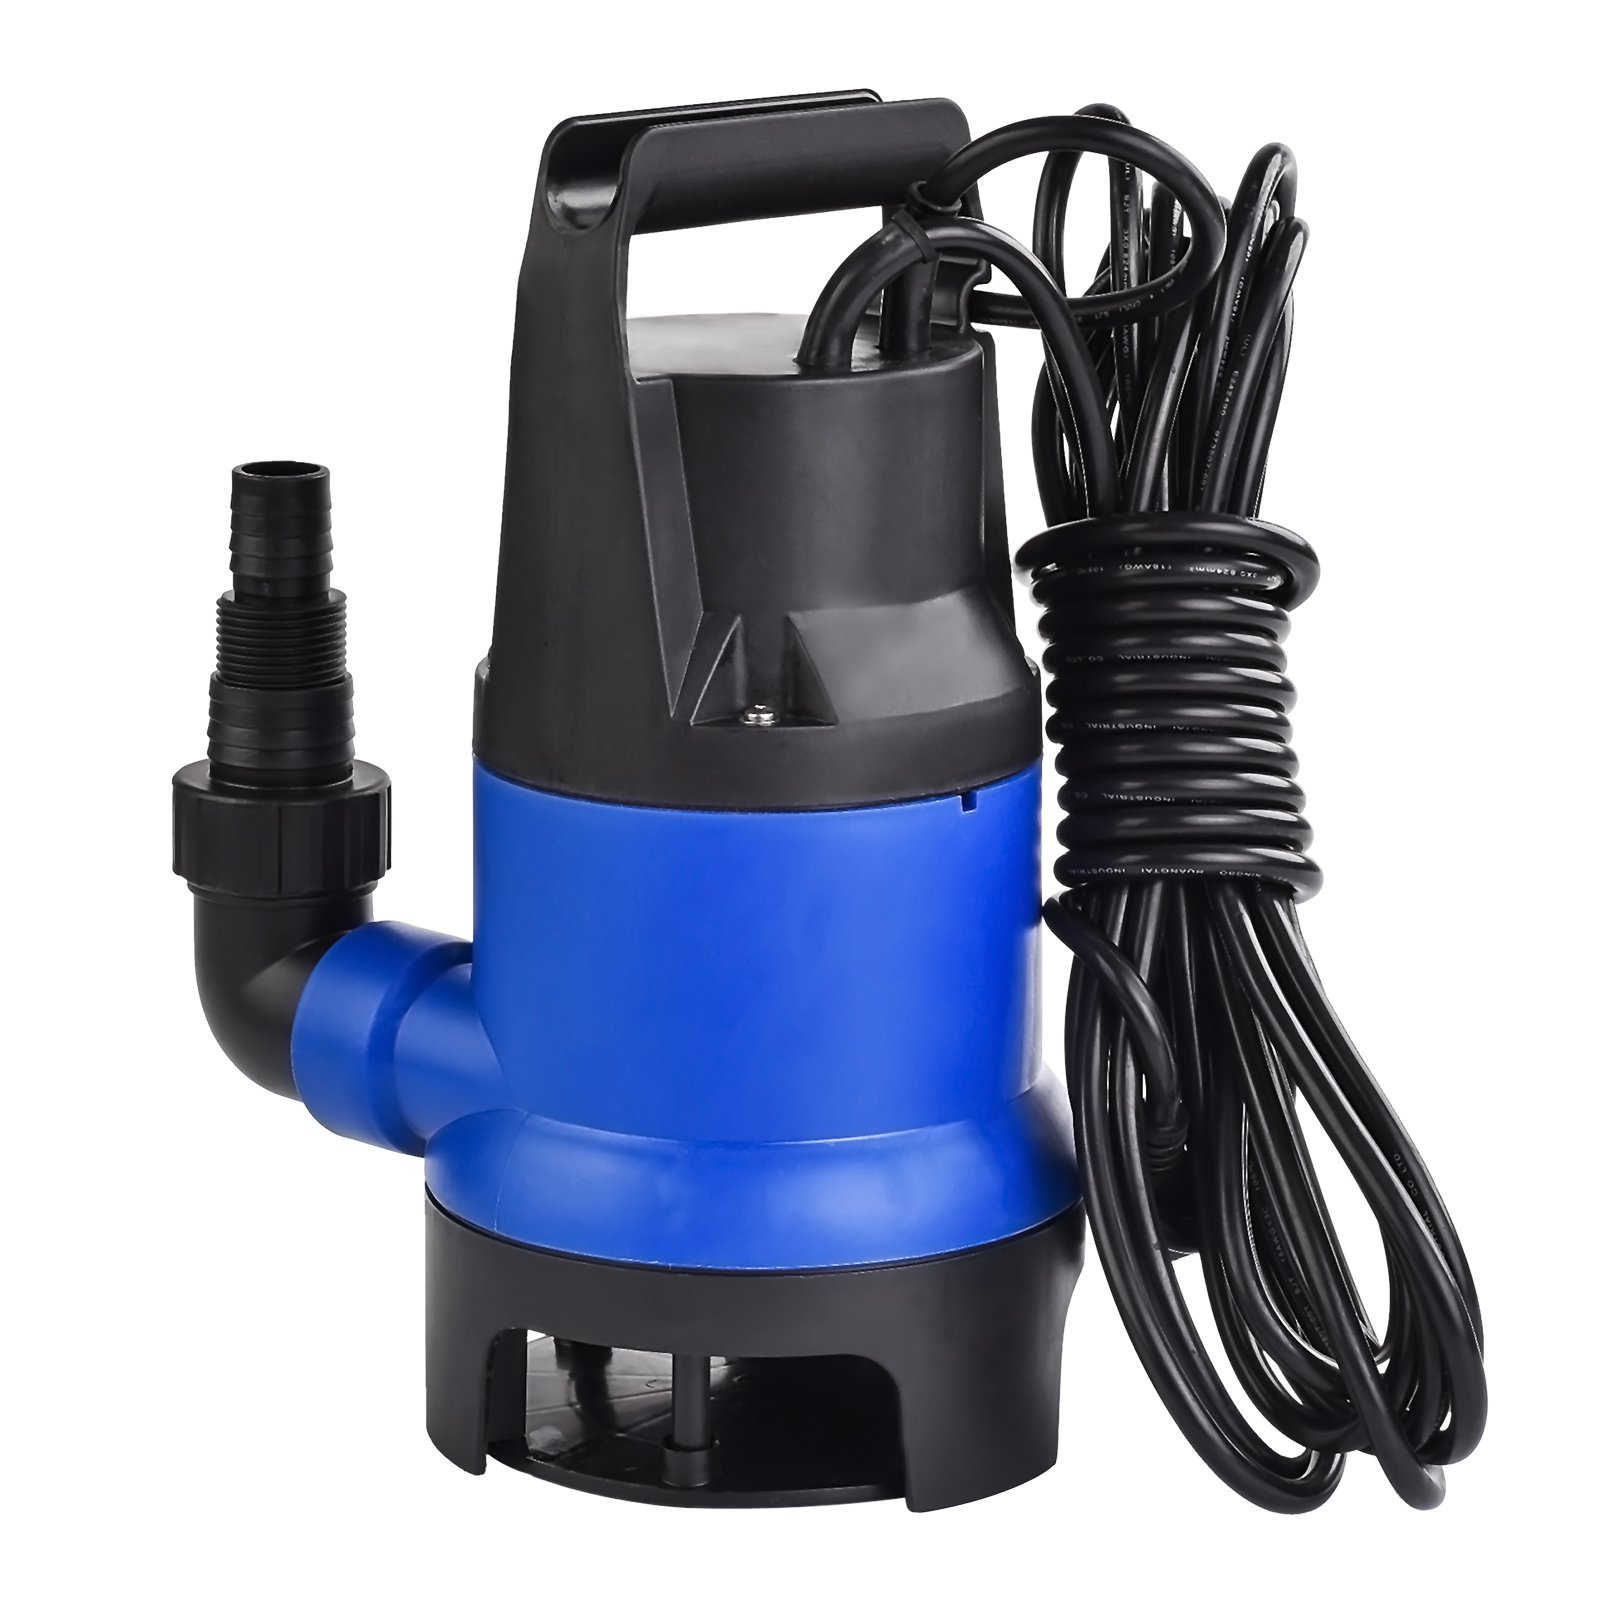 Murtisol 1/2 HP 1980GPH 400W Submersible Water Pump 7500L/H Clean Dirty Water Transfer for Garden Pool Outdoor by Murtisol